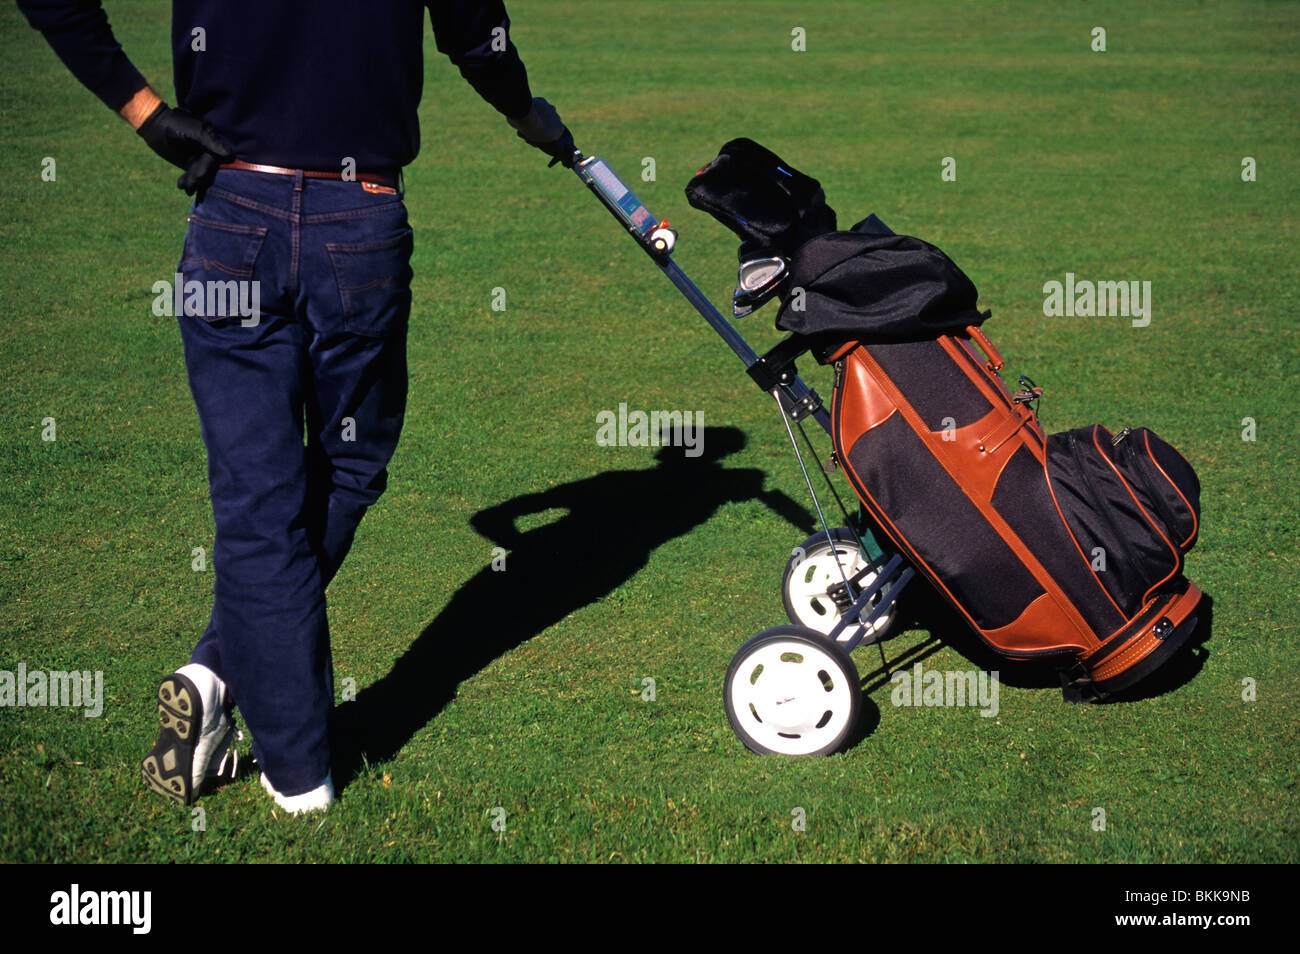 Golfer / Caddy holding his golf bag / trolley - Stock Image